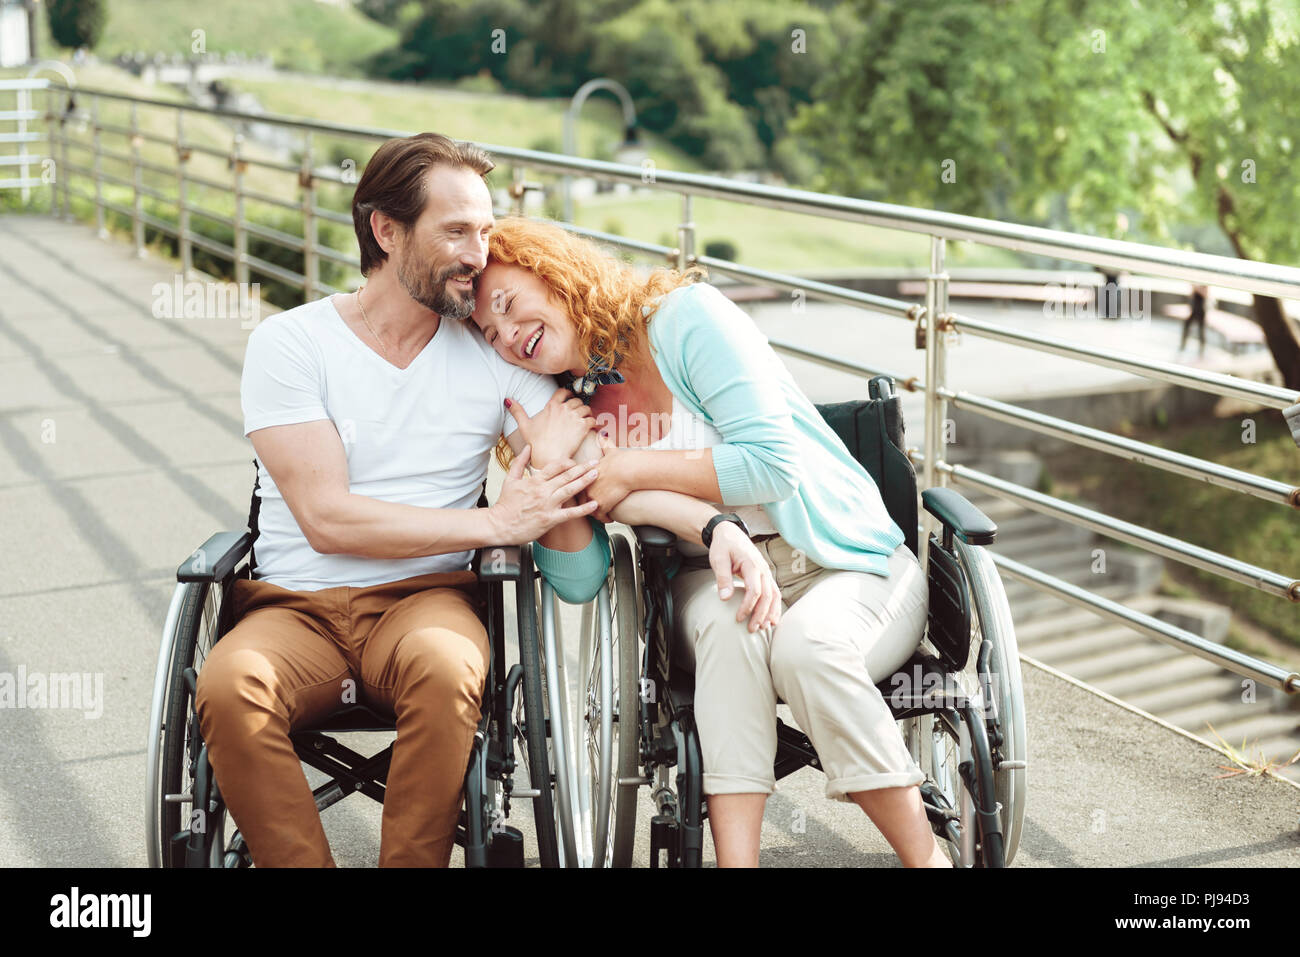 Loving wife laughing and embracing husband - Stock Image